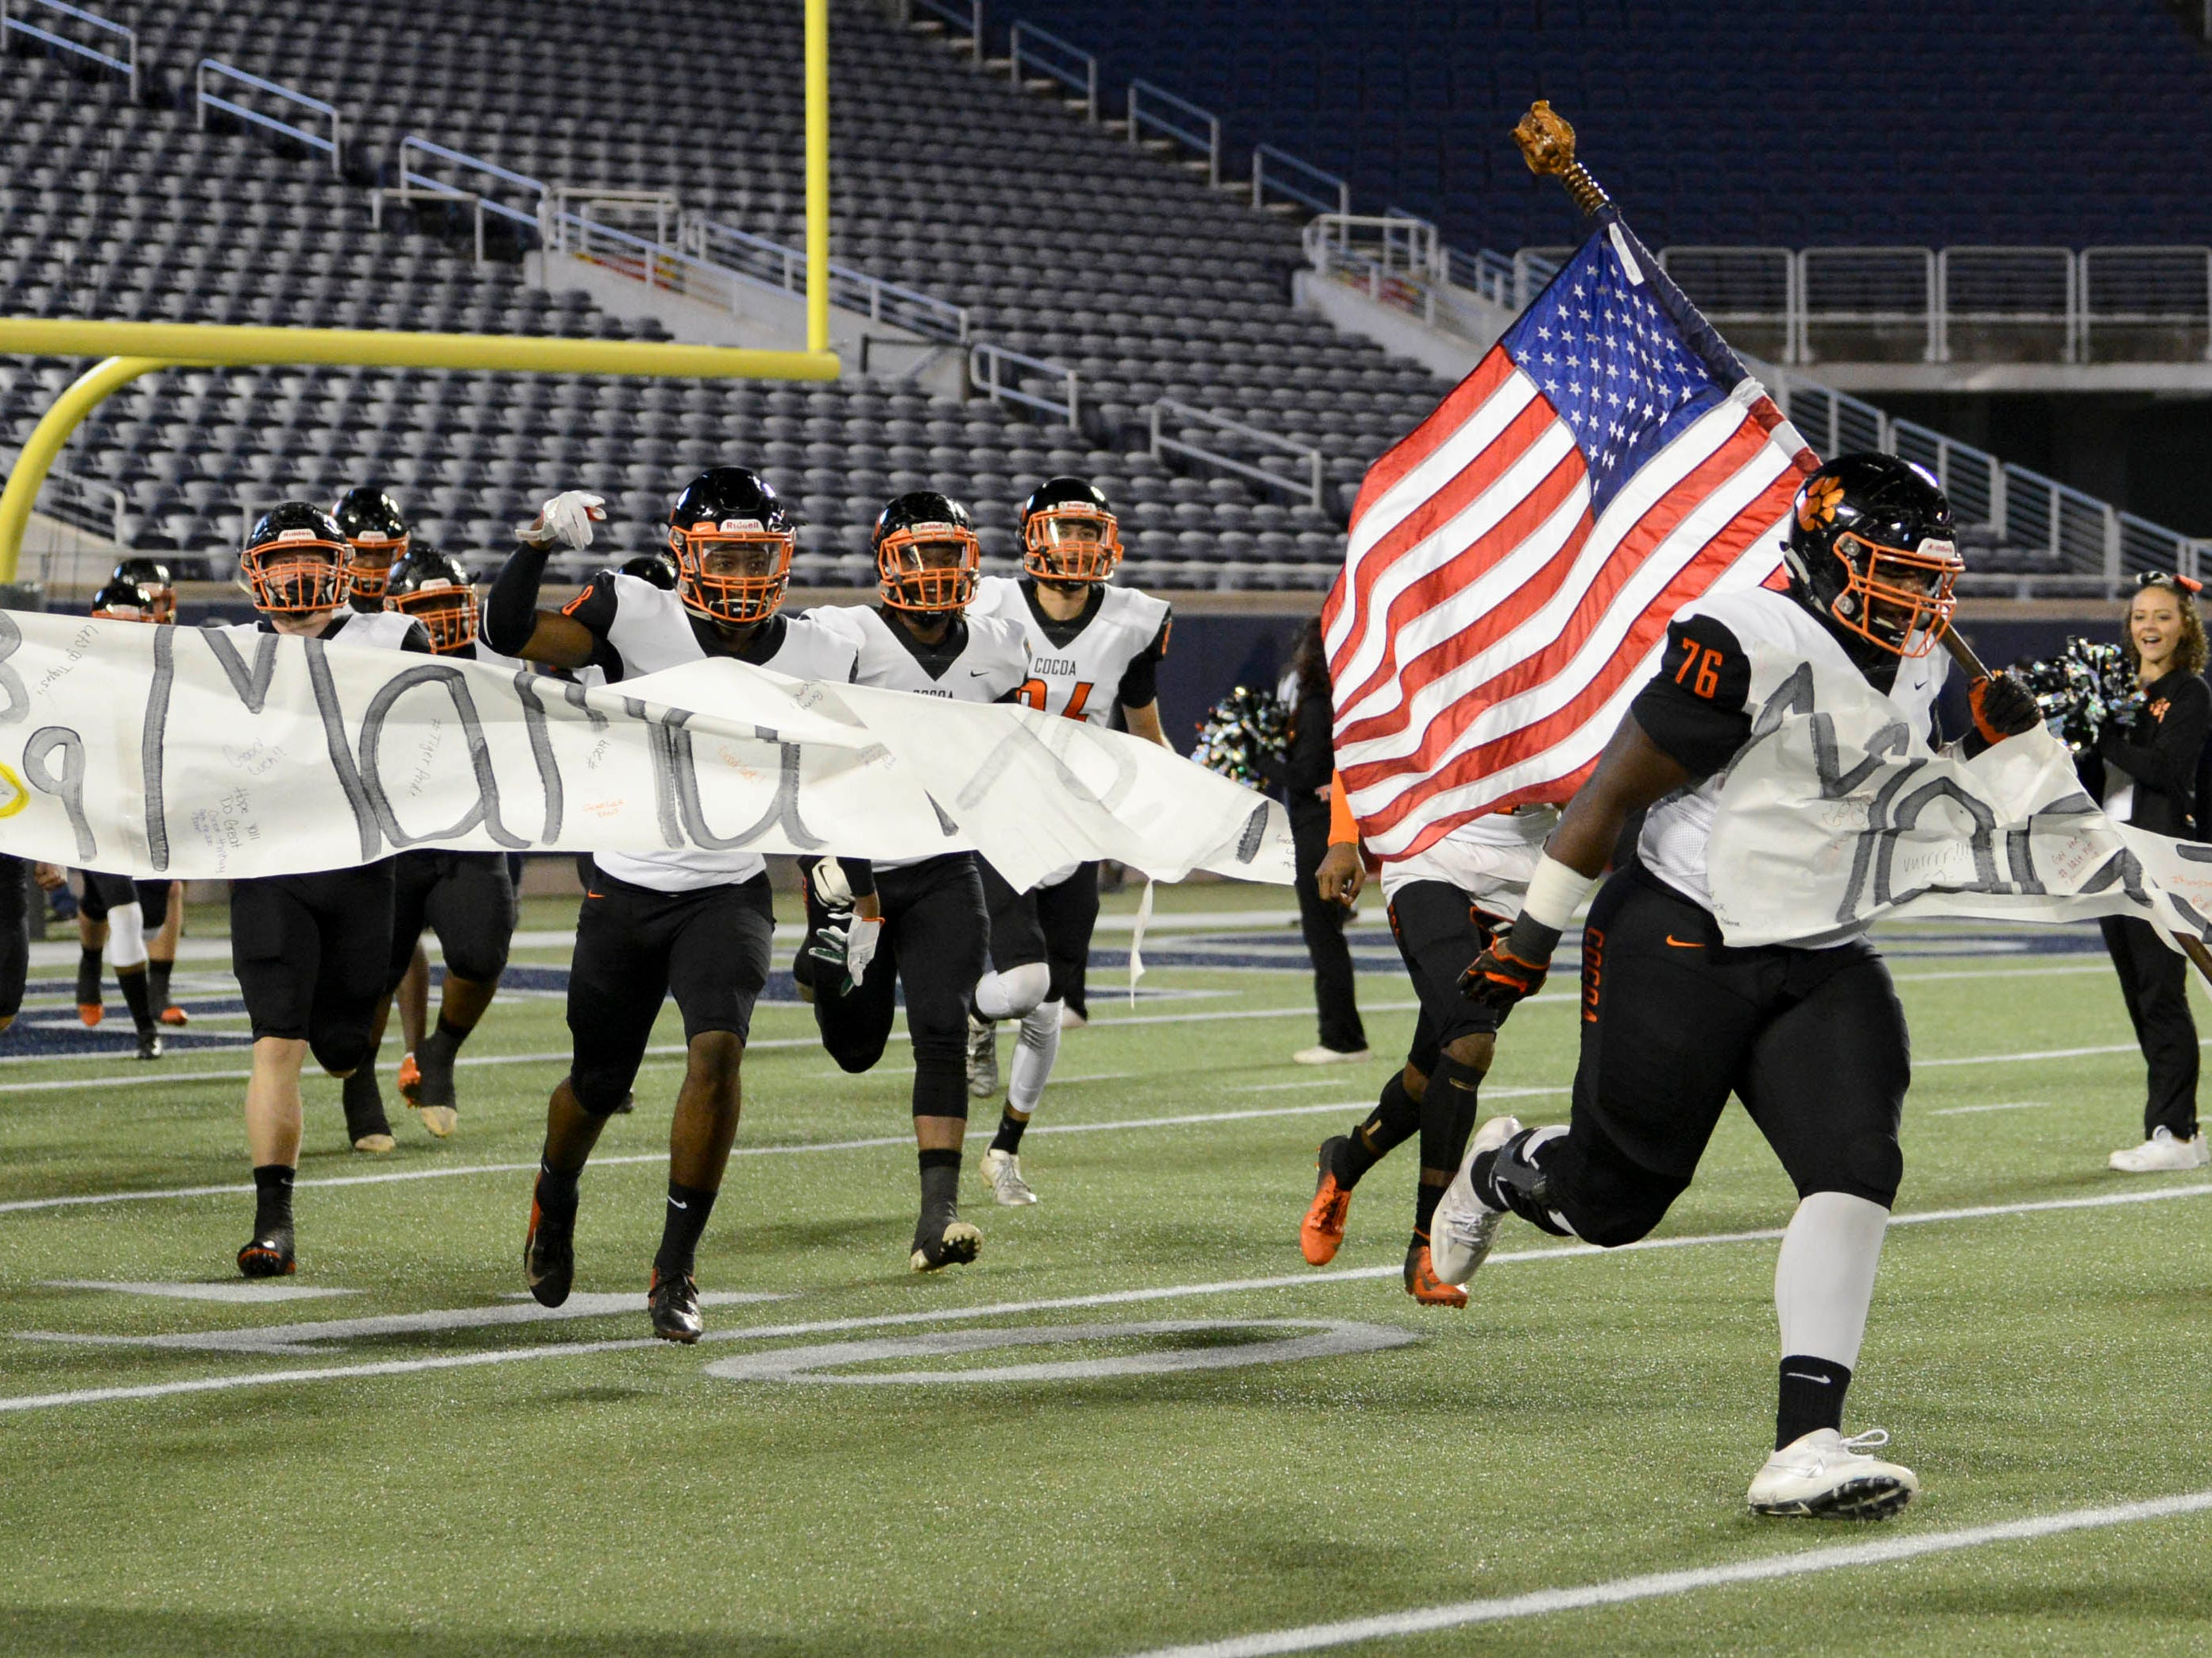 The Cocoa Tigers take the field for Thursday's Class 4A football state championship.